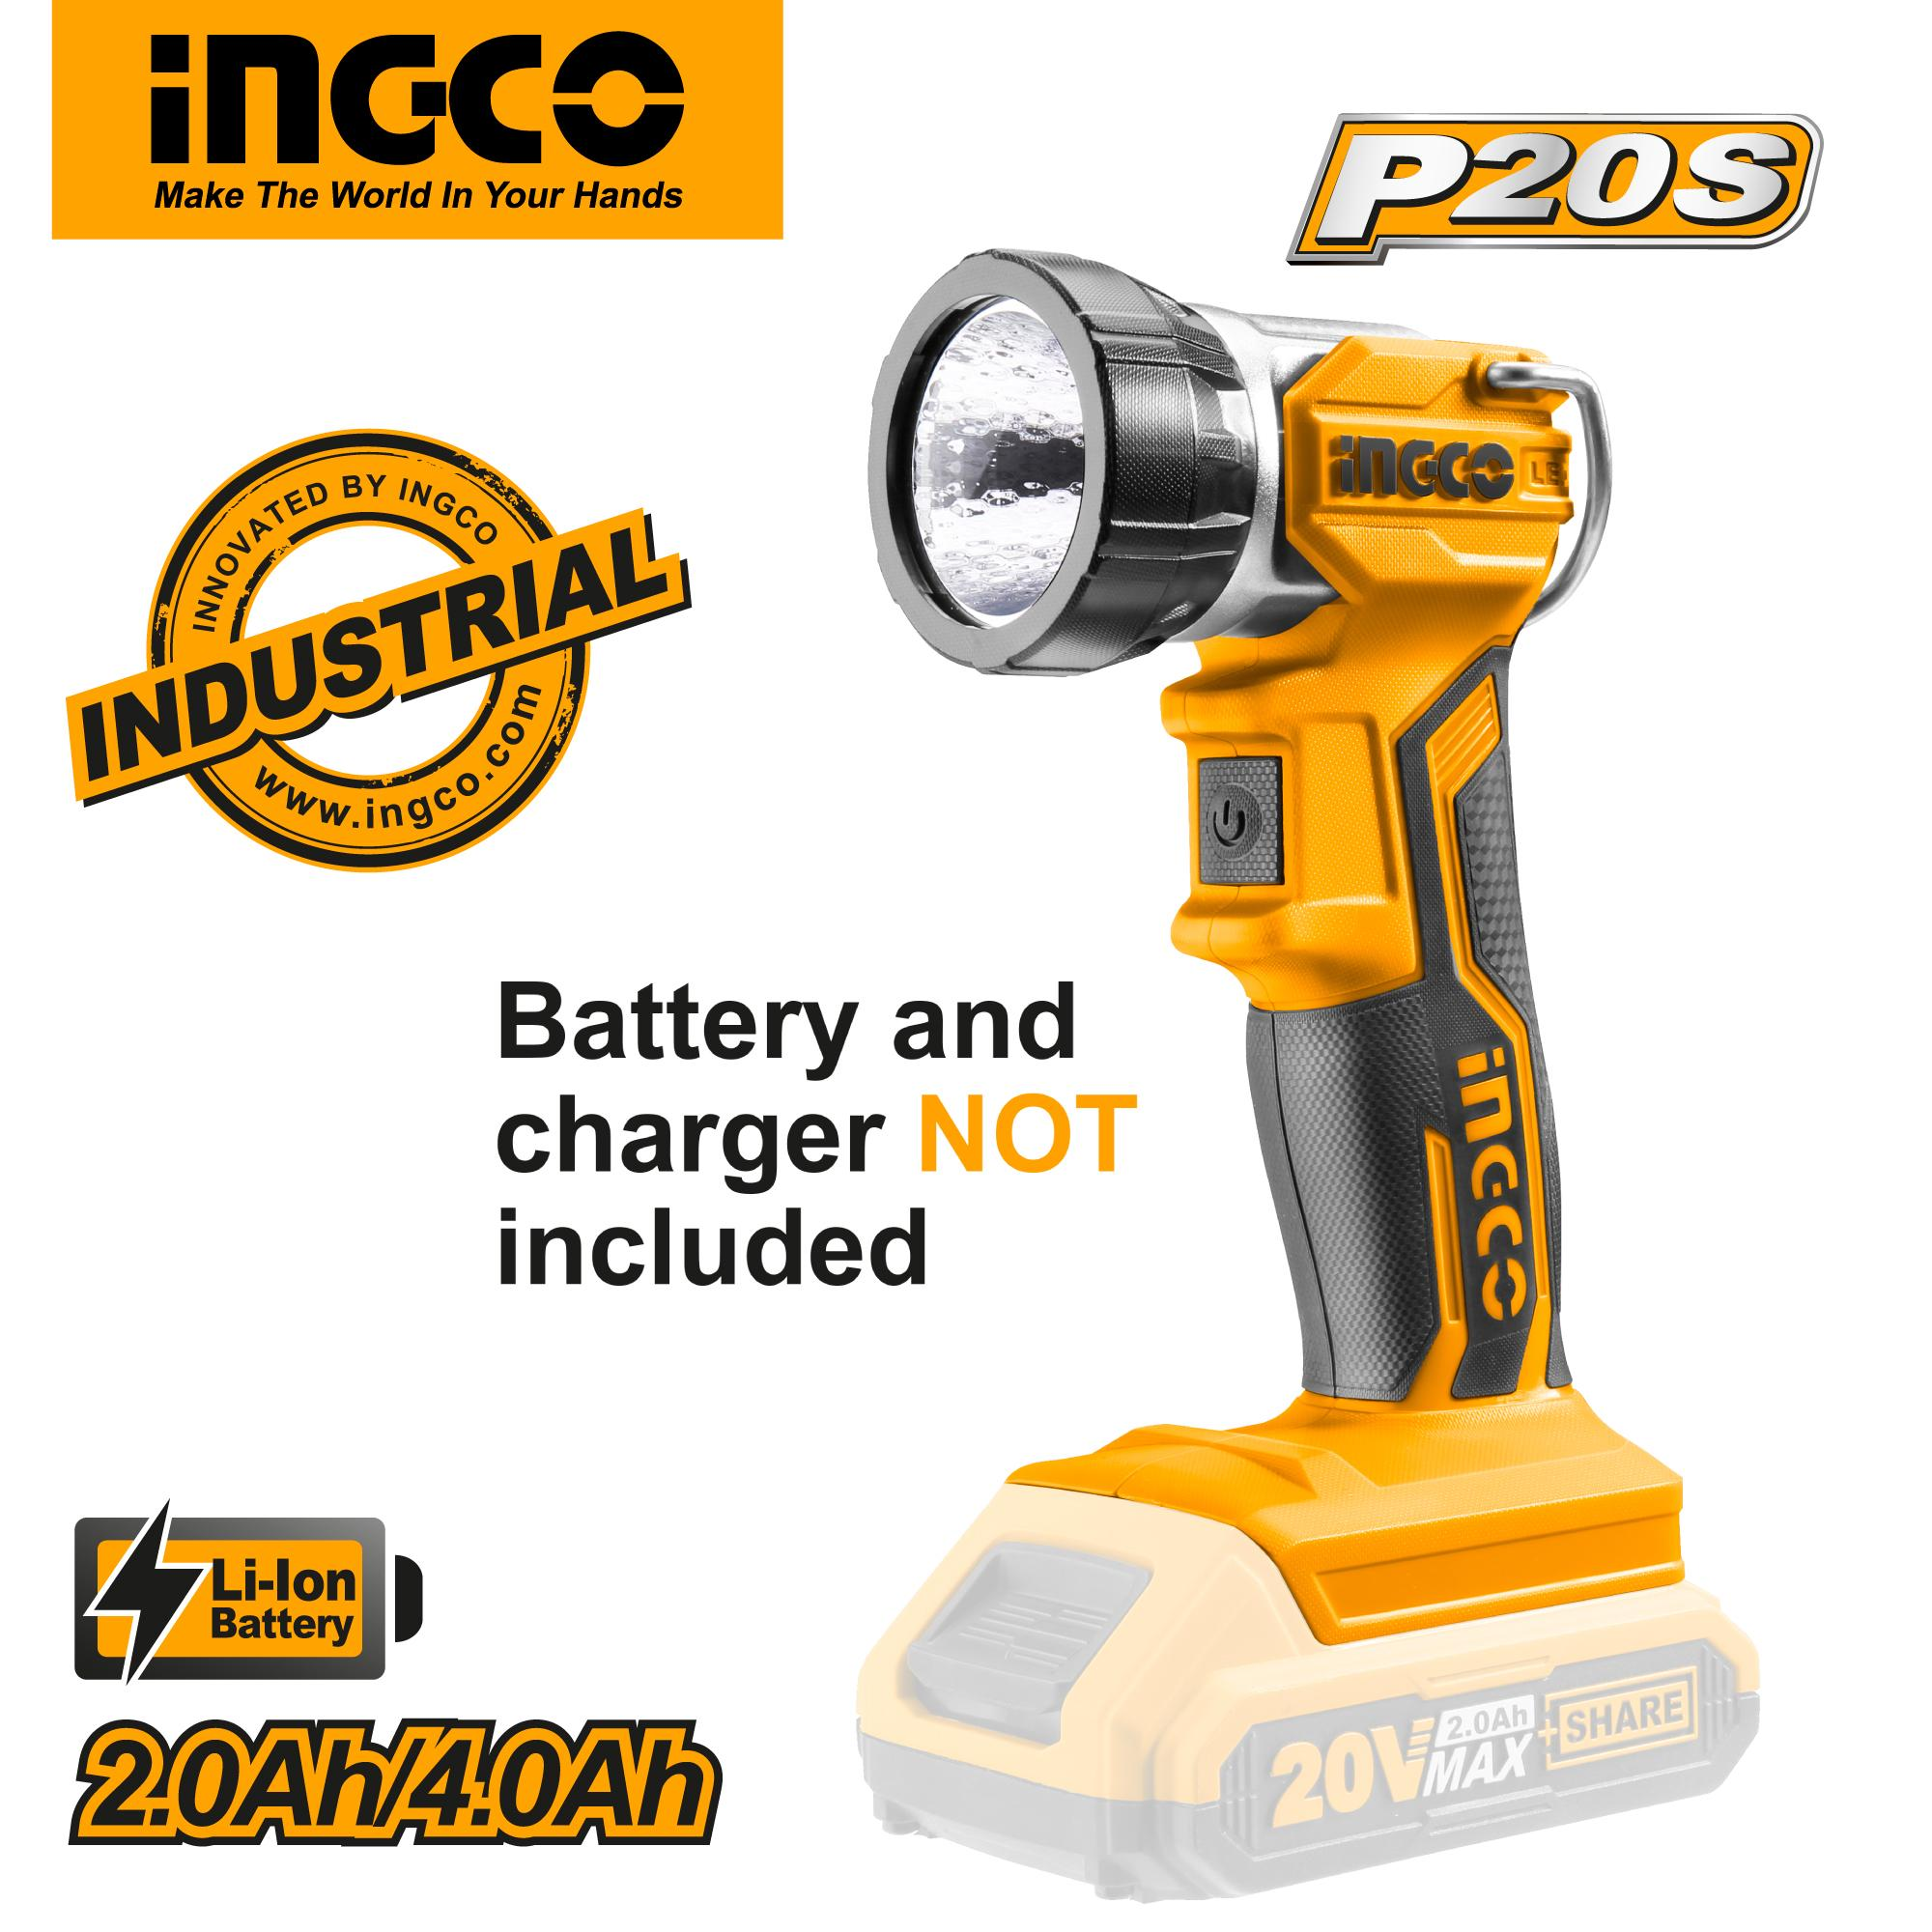 INGCO P20S Tools 20V Portable Lithium-Ion Work Lamp CWLI2001 (Body Only)